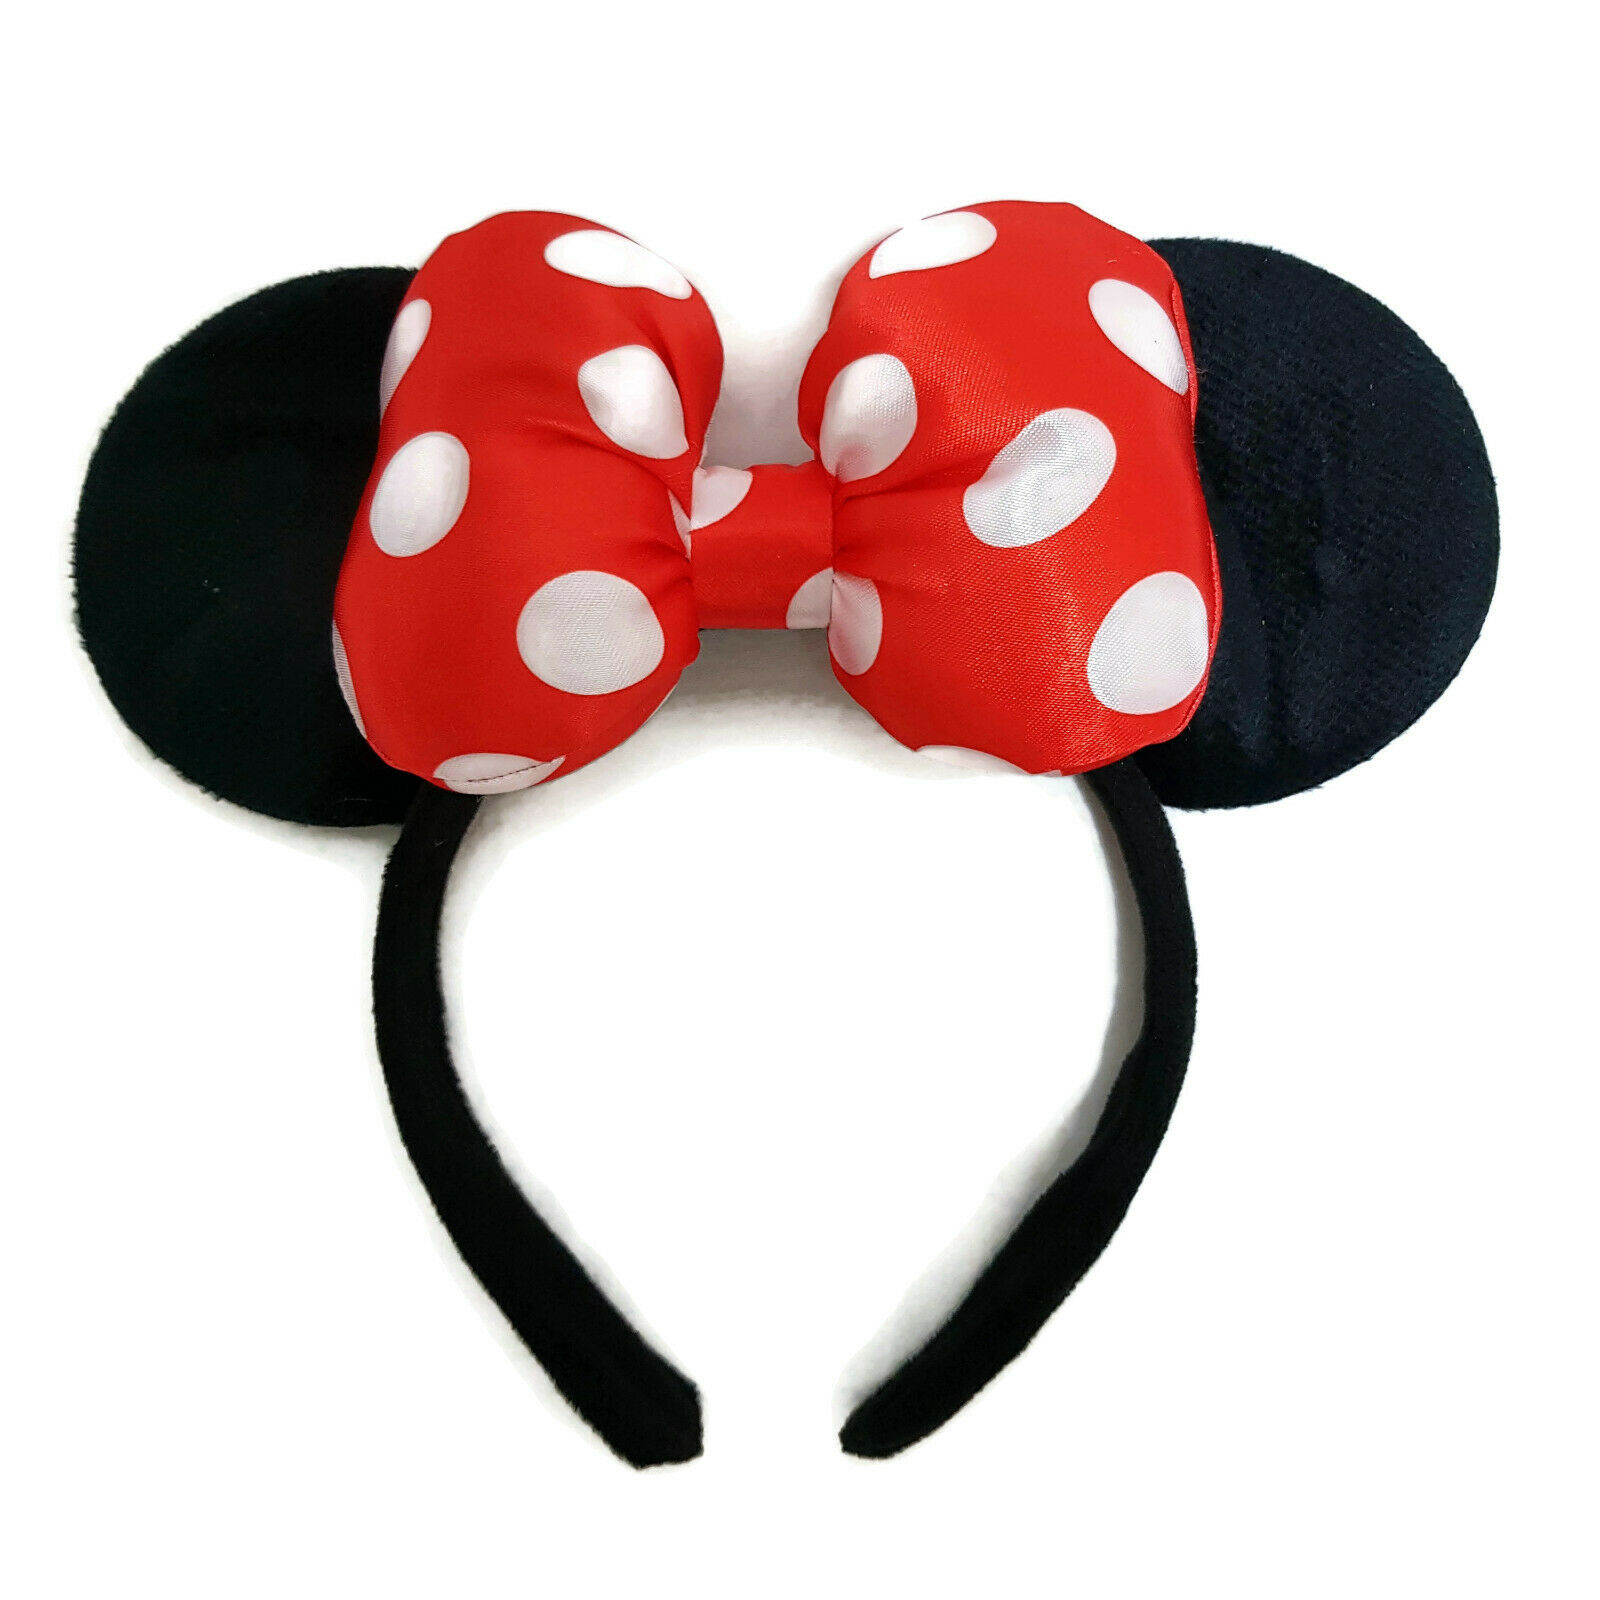 MINNIE MOUSE EARS Headband Black Sparkle Shimmer-White Polka Dots on Red Mickey